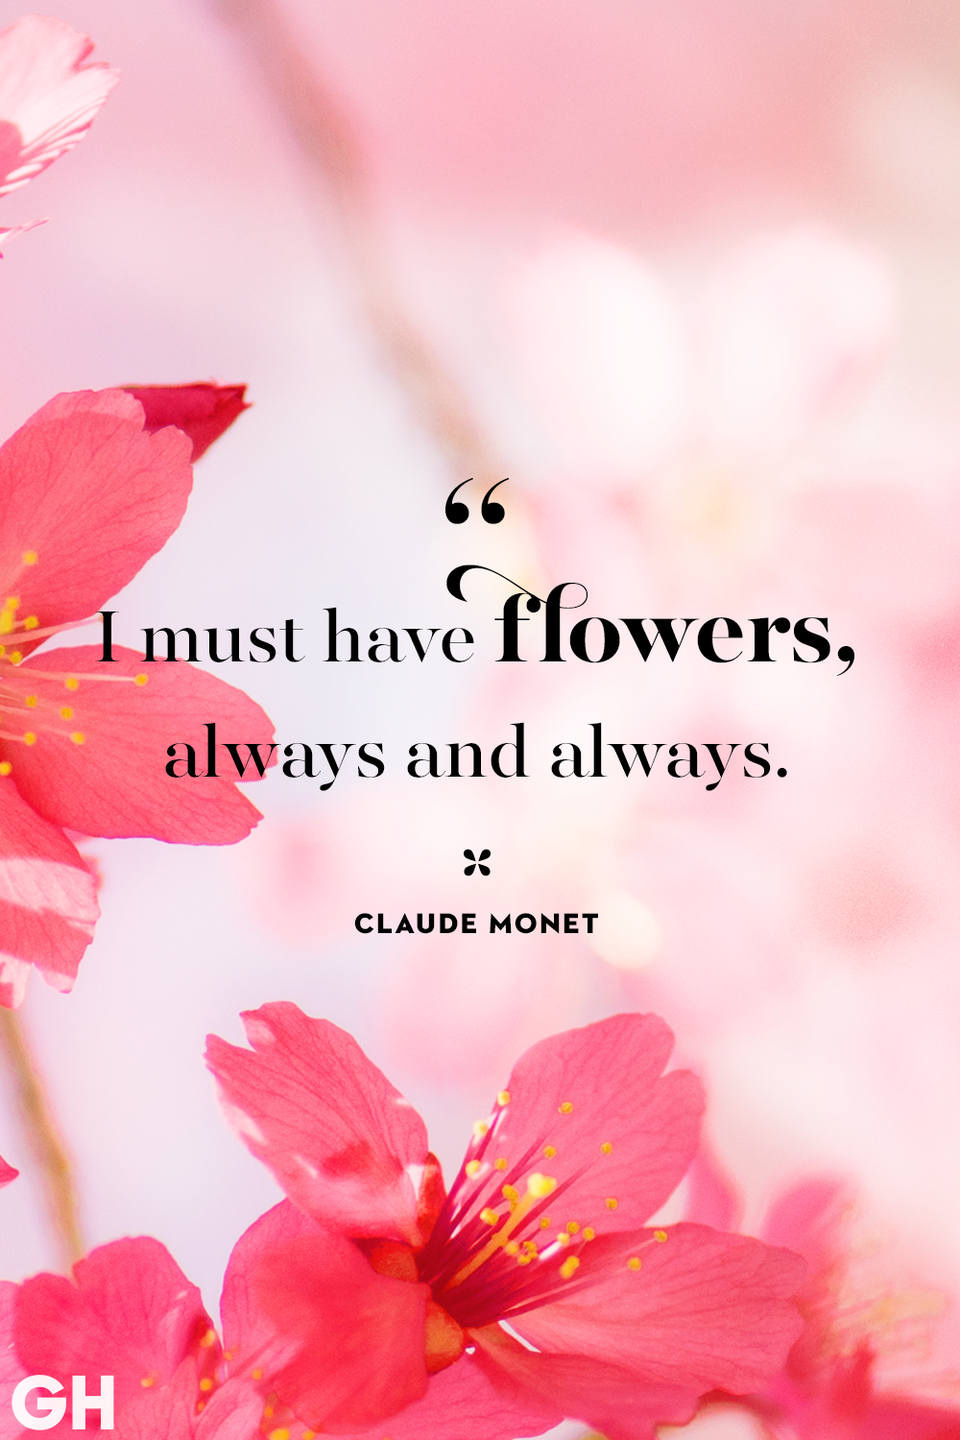 <p>I must have flowers, always and always.</p>